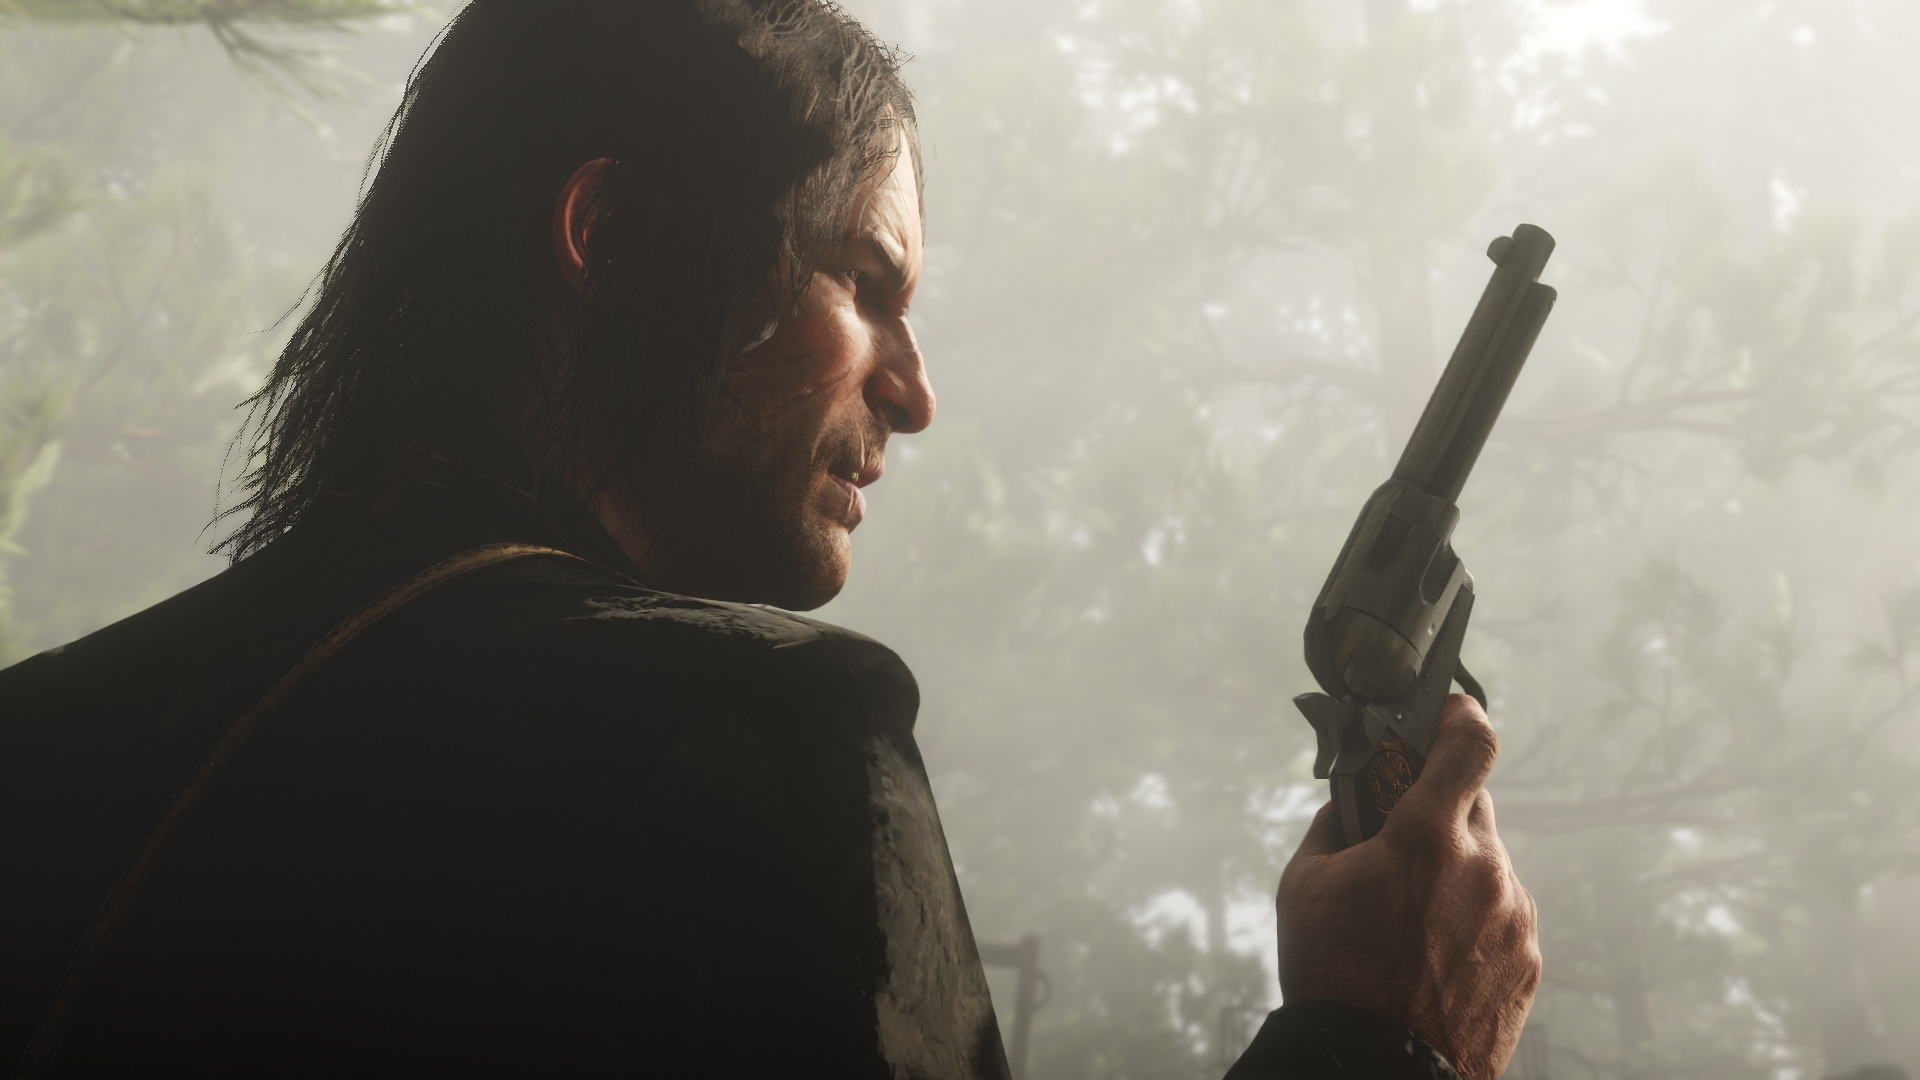 Stay Tuned For More Red Dead Redemption 2 Info Next Month Including First Details About The Games Special Editions And